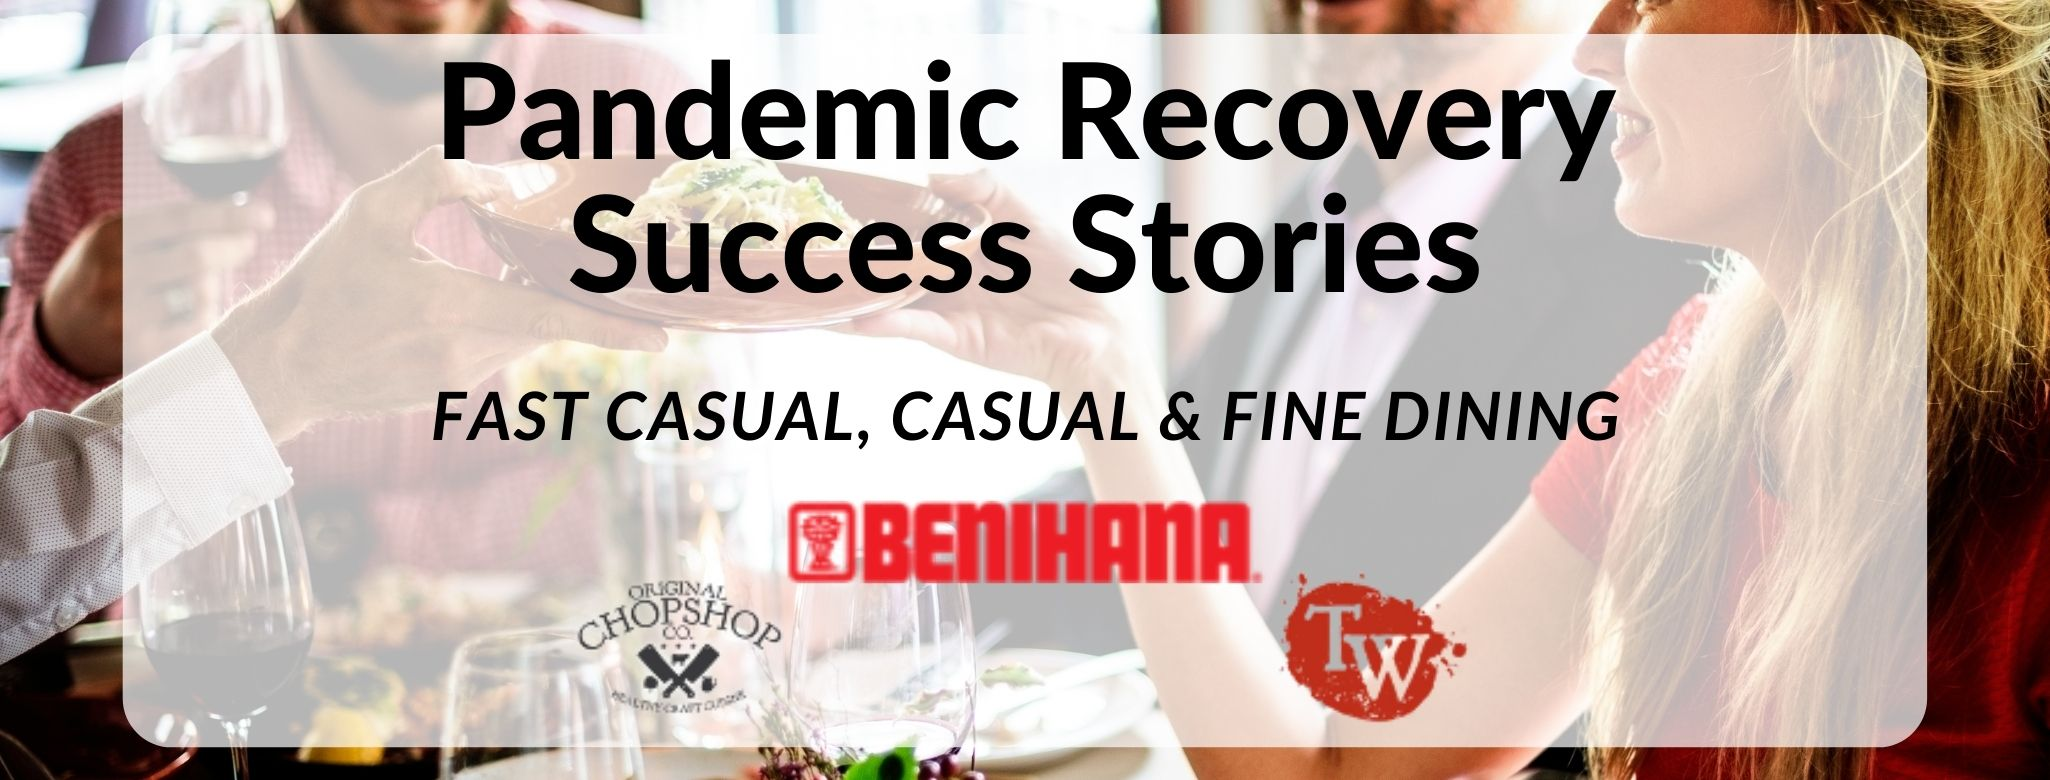 Pandemic Recovery Success Stories- fast casual, casual & fine dining